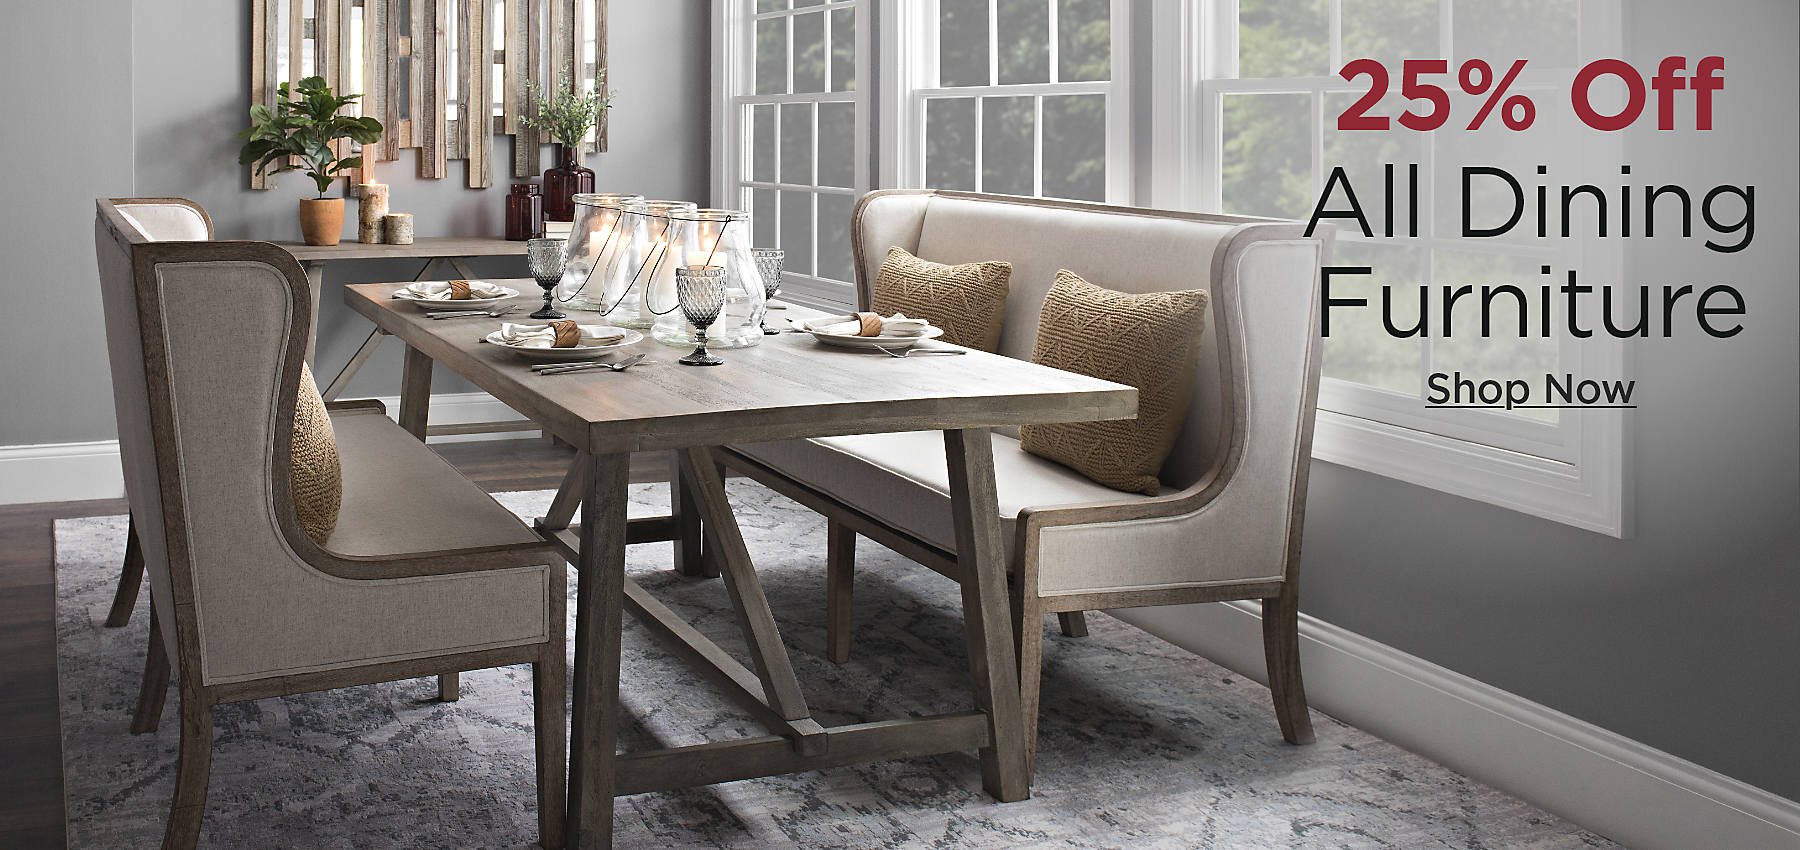 25% Off All Dining Furniture